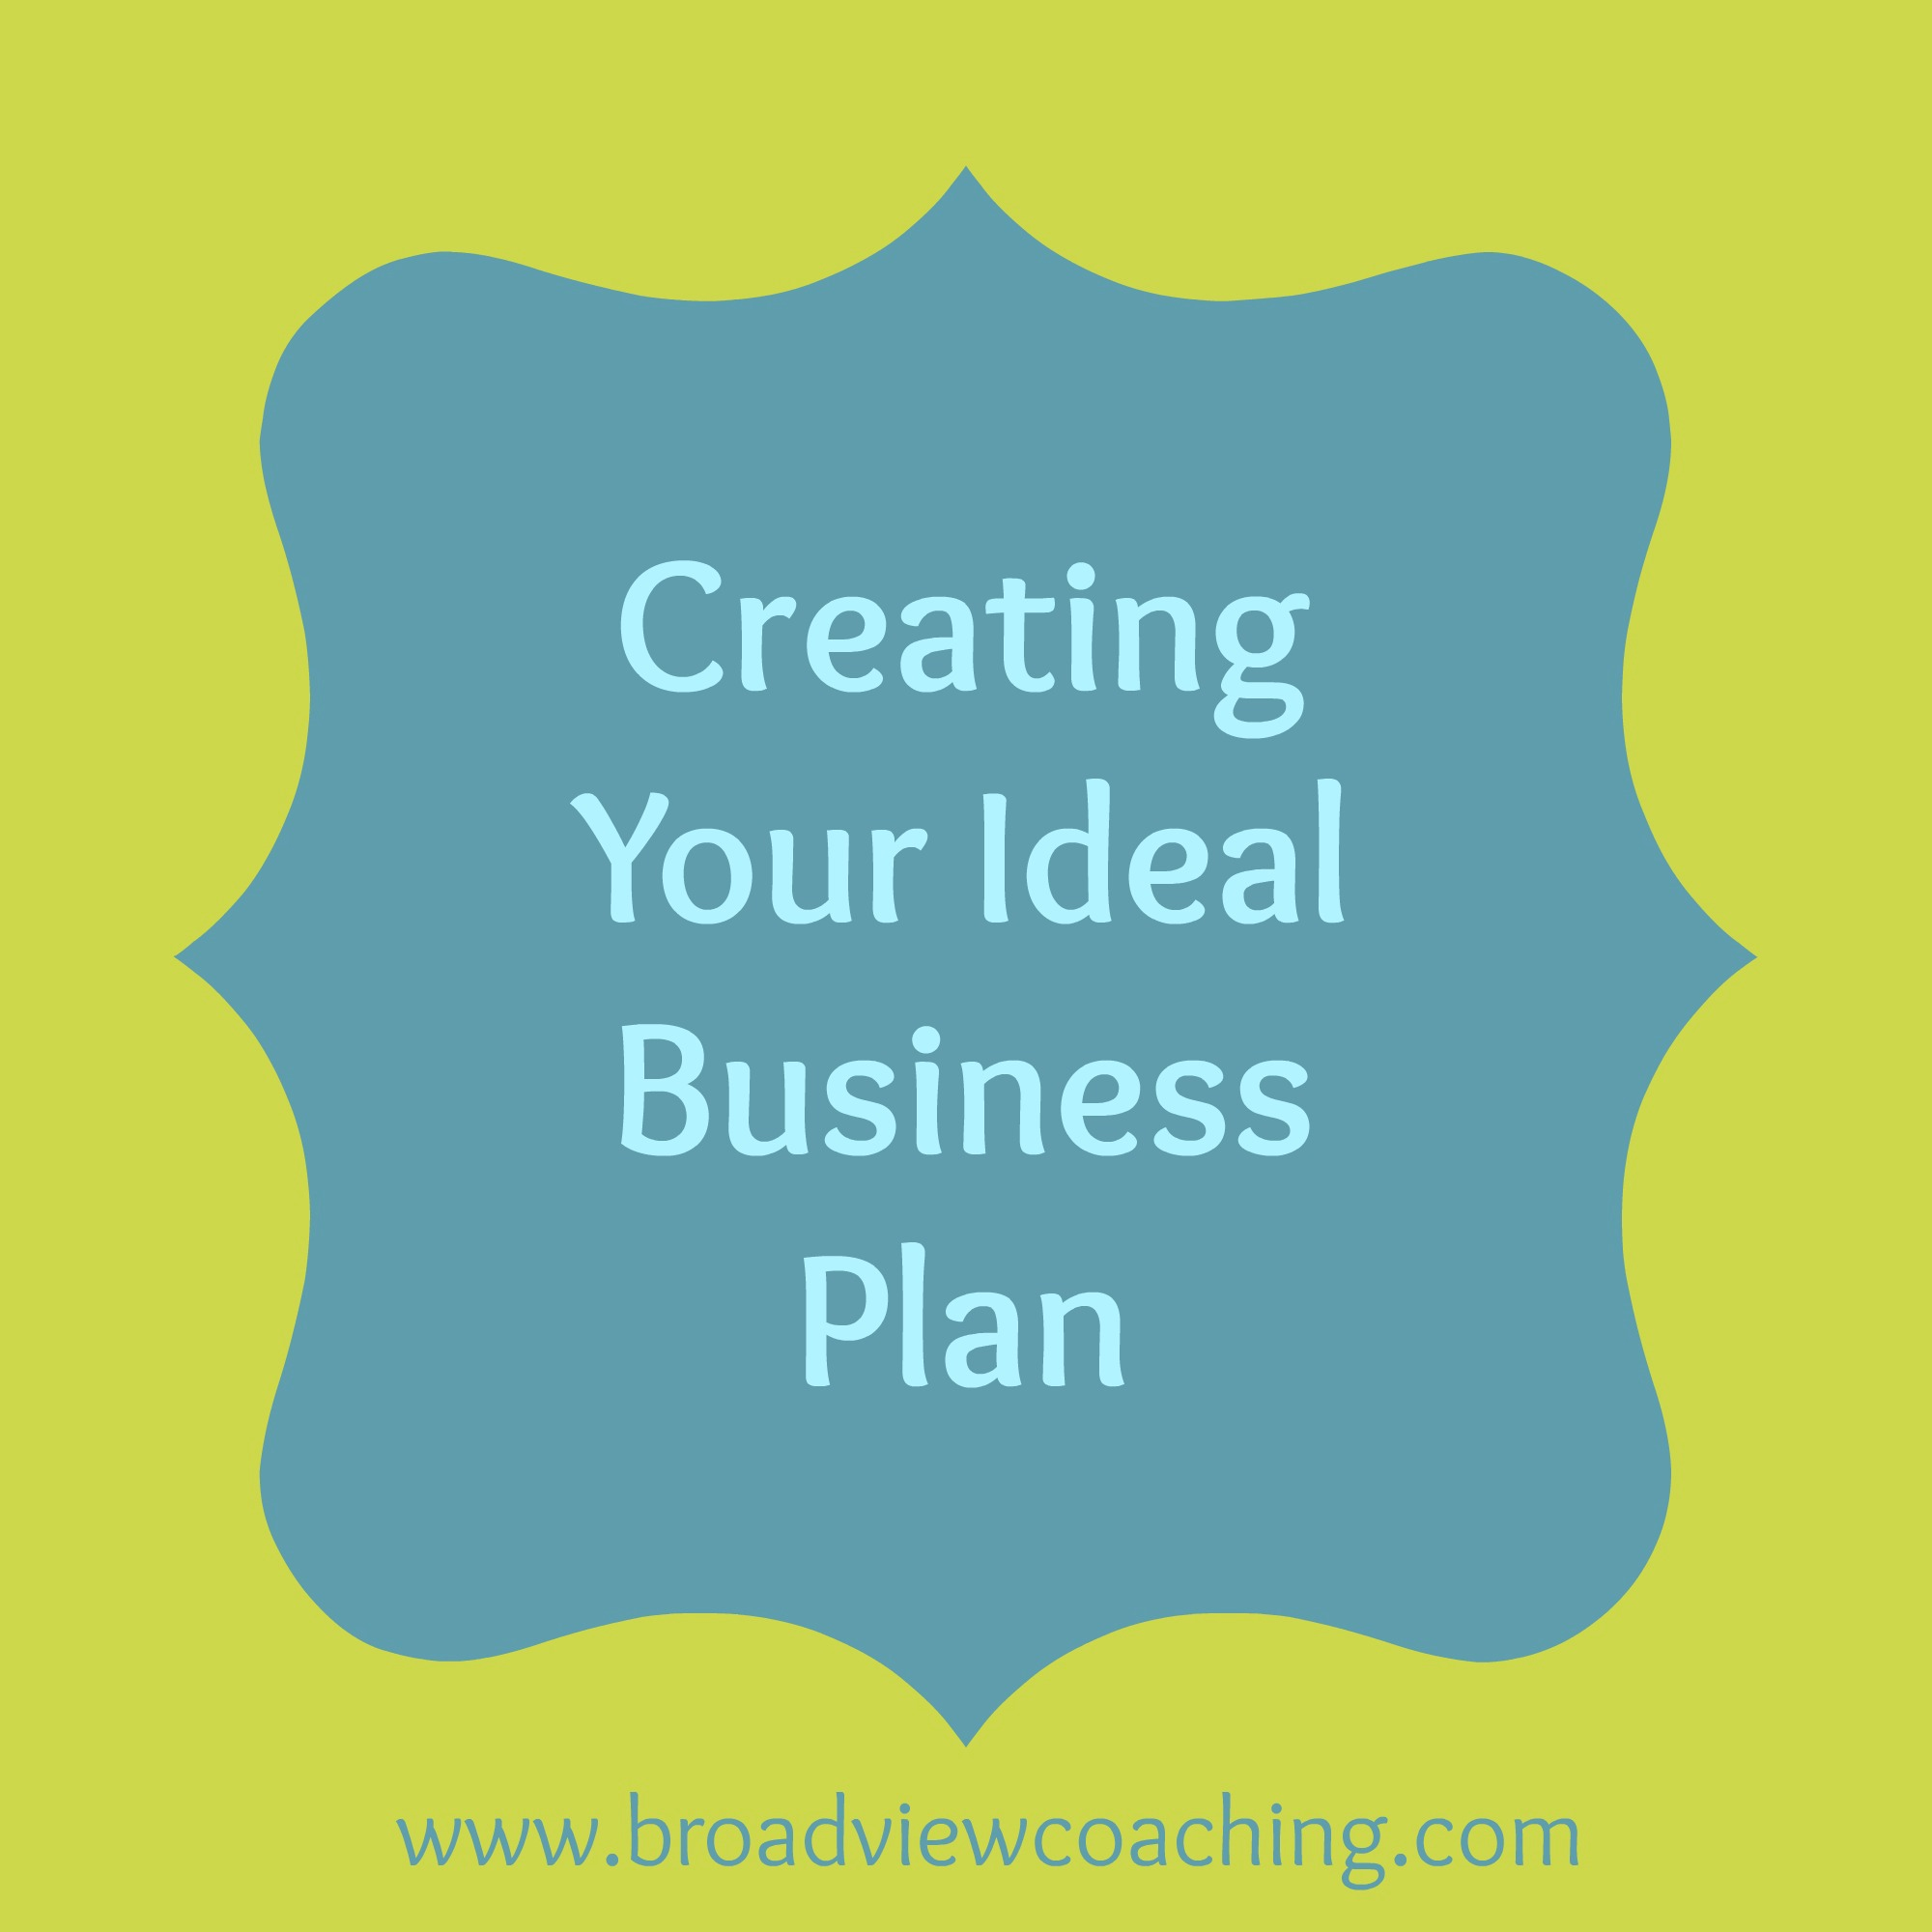 my ideal business Your ideal business should align seamlessly with your ideal lifestyle, carrying  over the passions and purposes that drive you on a daily basis.